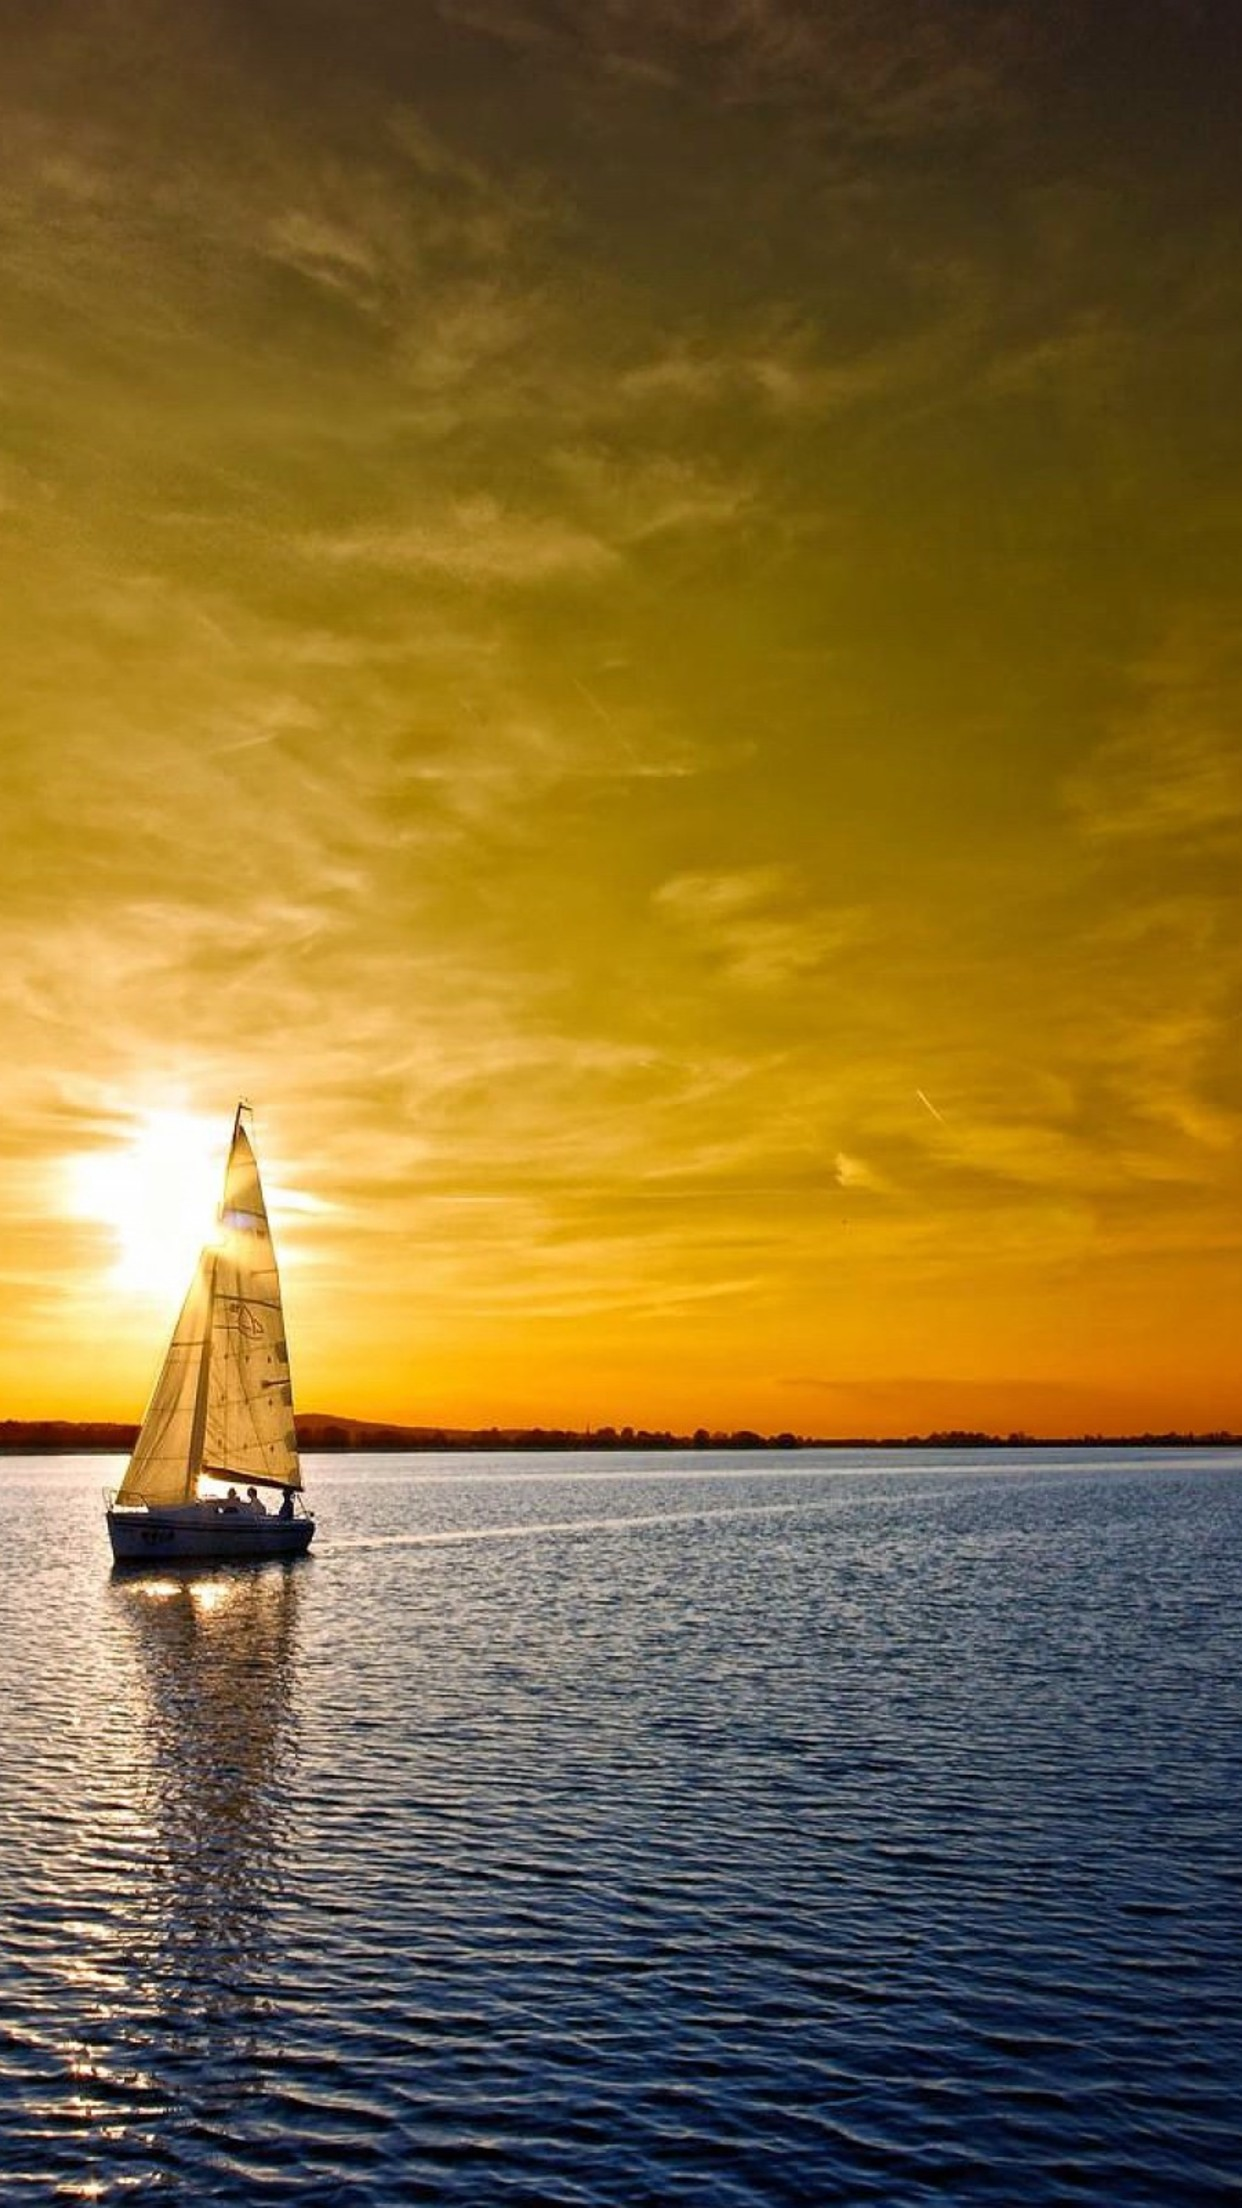 Boat Sail Wallpaper For Iphone X 8 7 6 Free Download On